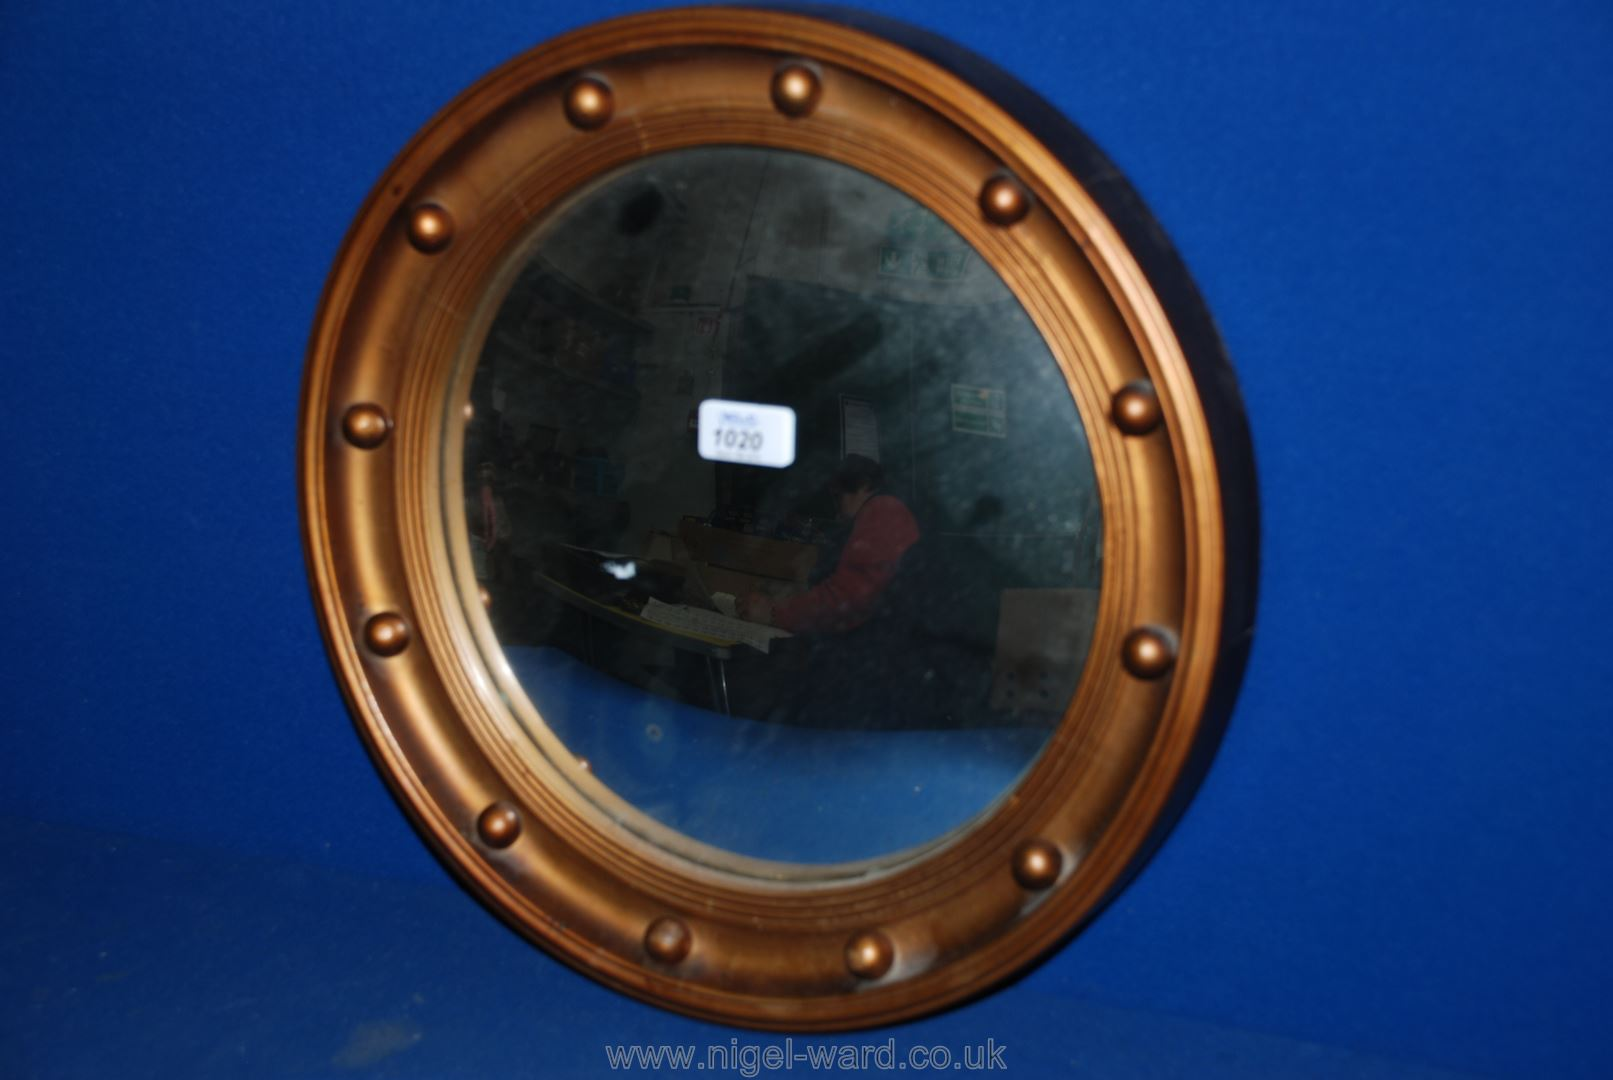 Lot 1020 - A circular convex wall mirror with a wooden framed with a gold- coloured rim.